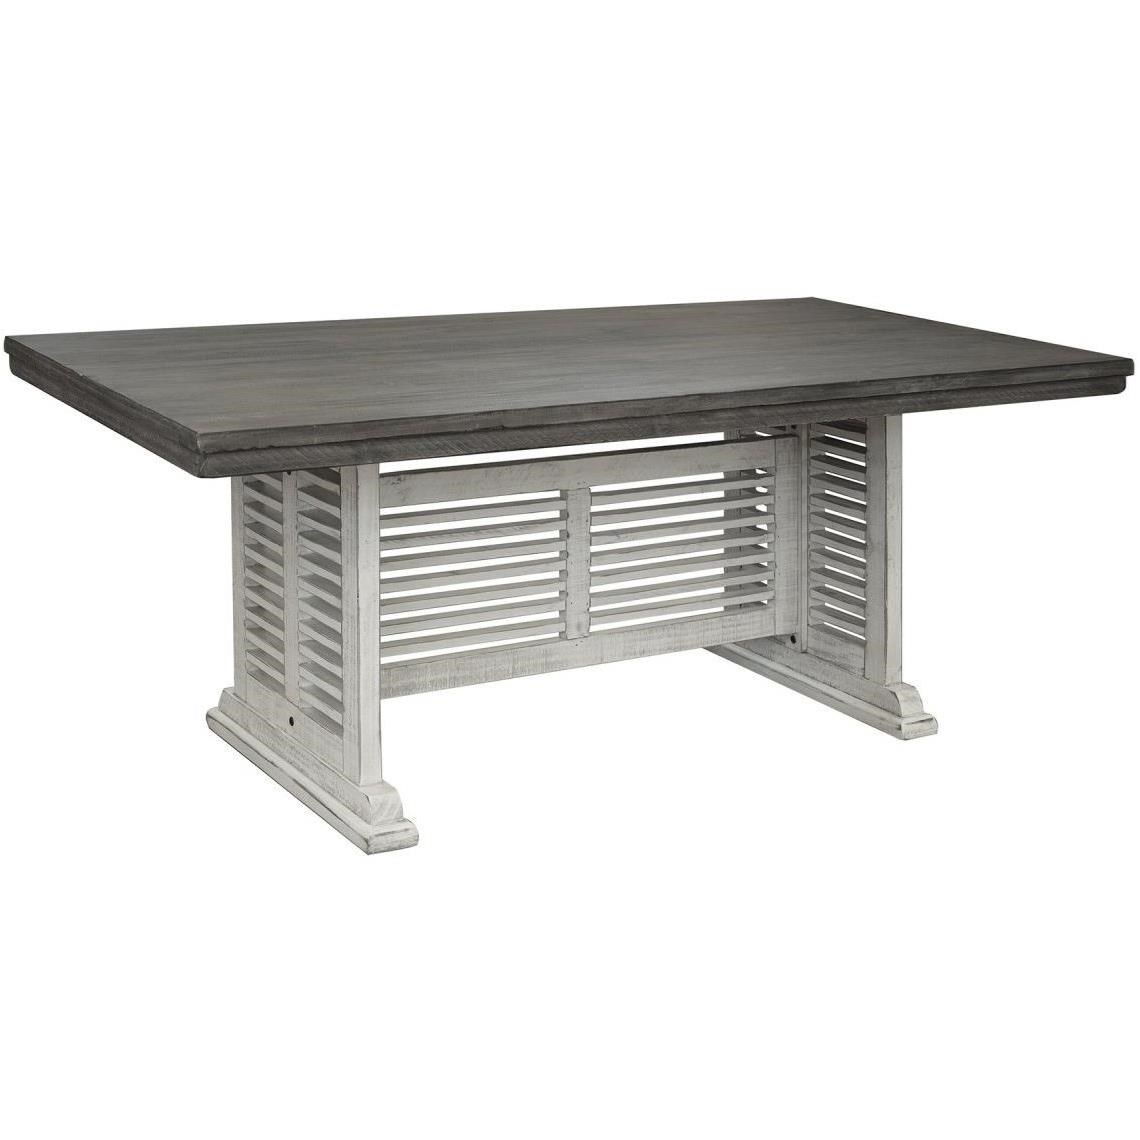 Stone Counter Height Table by International Furniture Direct at Catalog Outlet